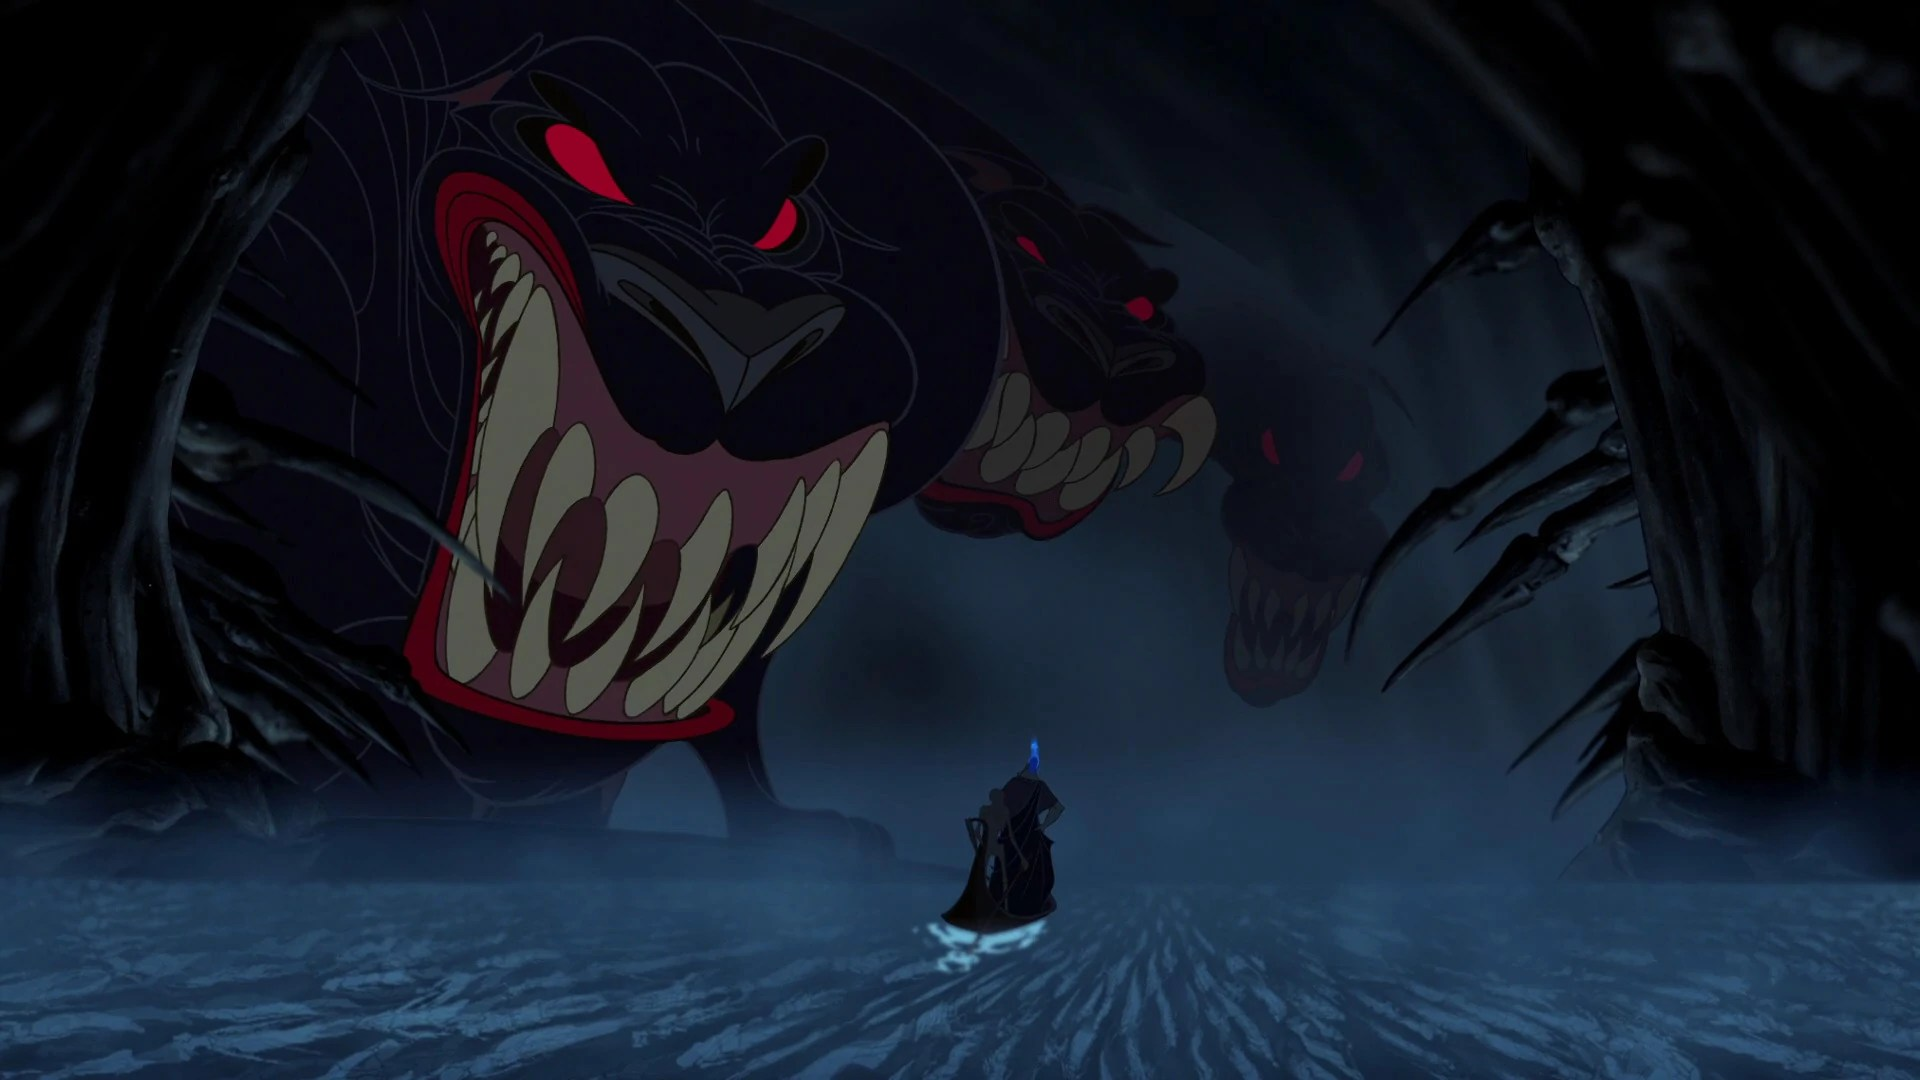 3d Animated Snake Live Wallpaper Cerberus Disney Wiki Fandom Powered By Wikia